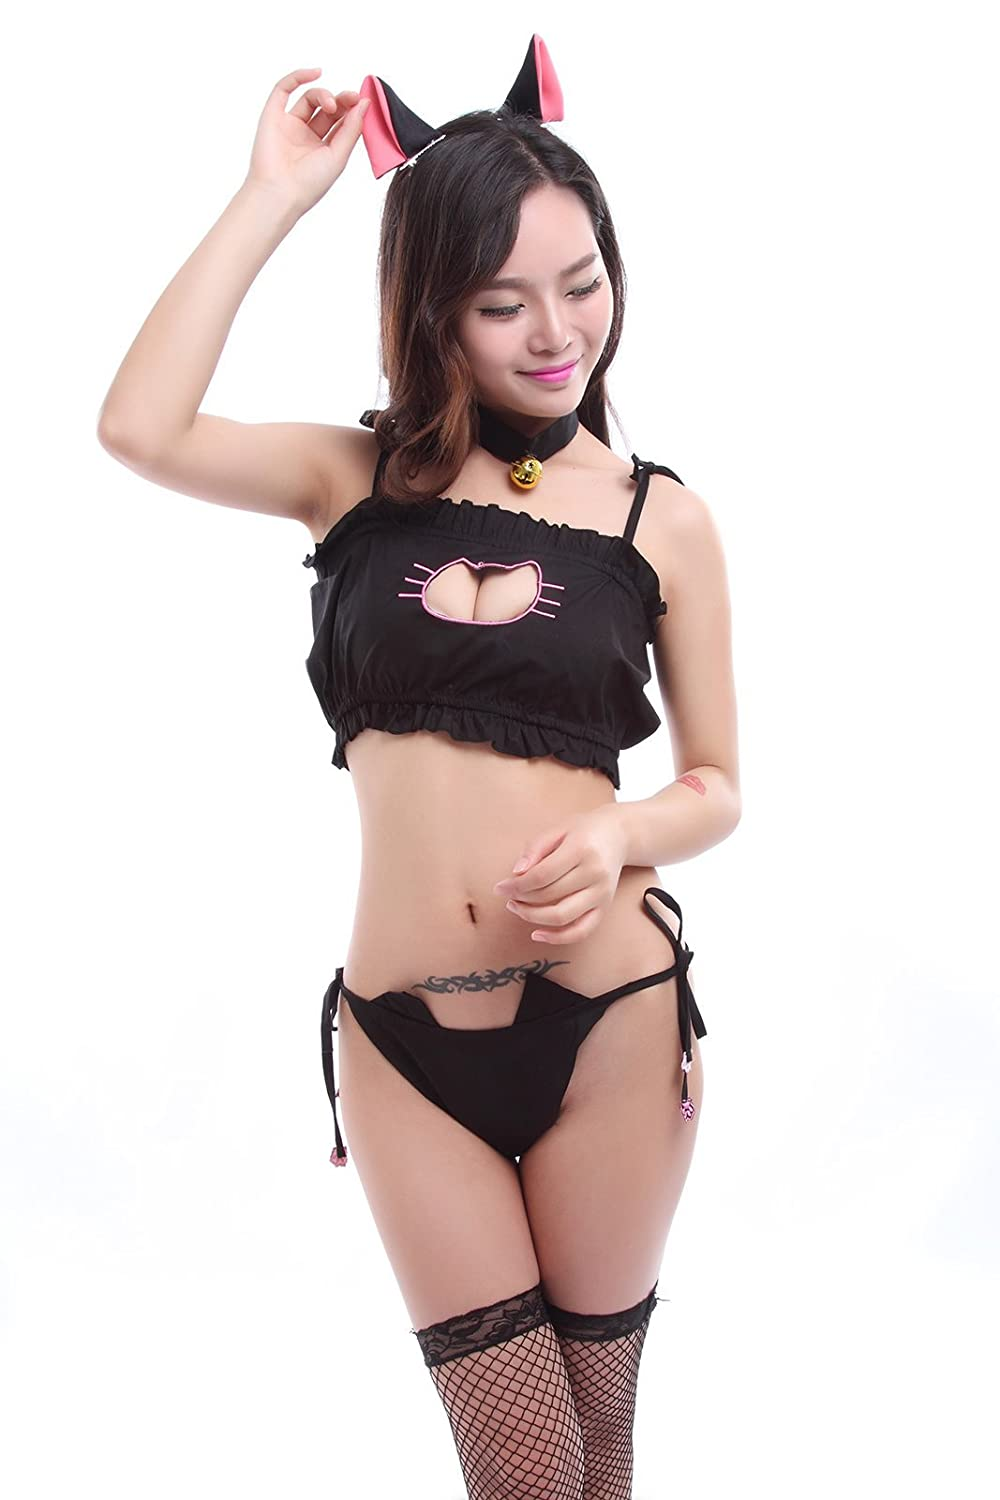 0196da87e17 Amazon.com  Nuoqi Anime Cute Cat Cosplay Costume Sexy Maid Embroidary Lingerie  Underwear Sleepwear  Clothing